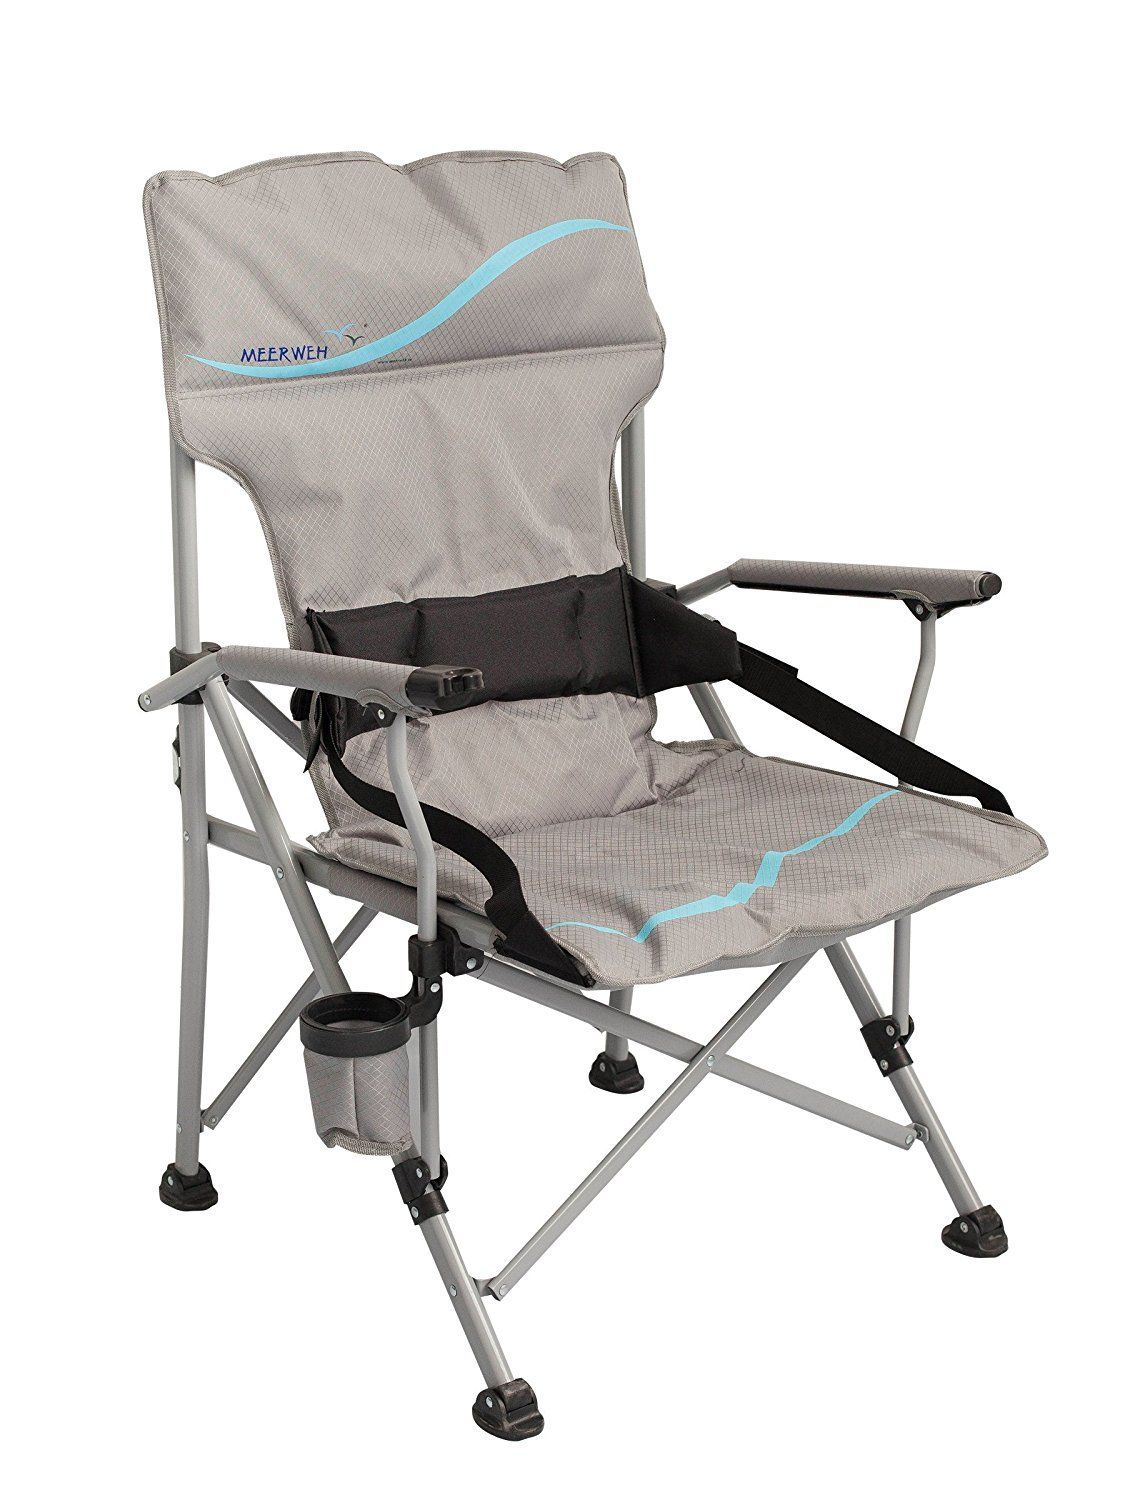 Meerweh 74042 2XLarge Deluxe Padded Folding Camping Chair